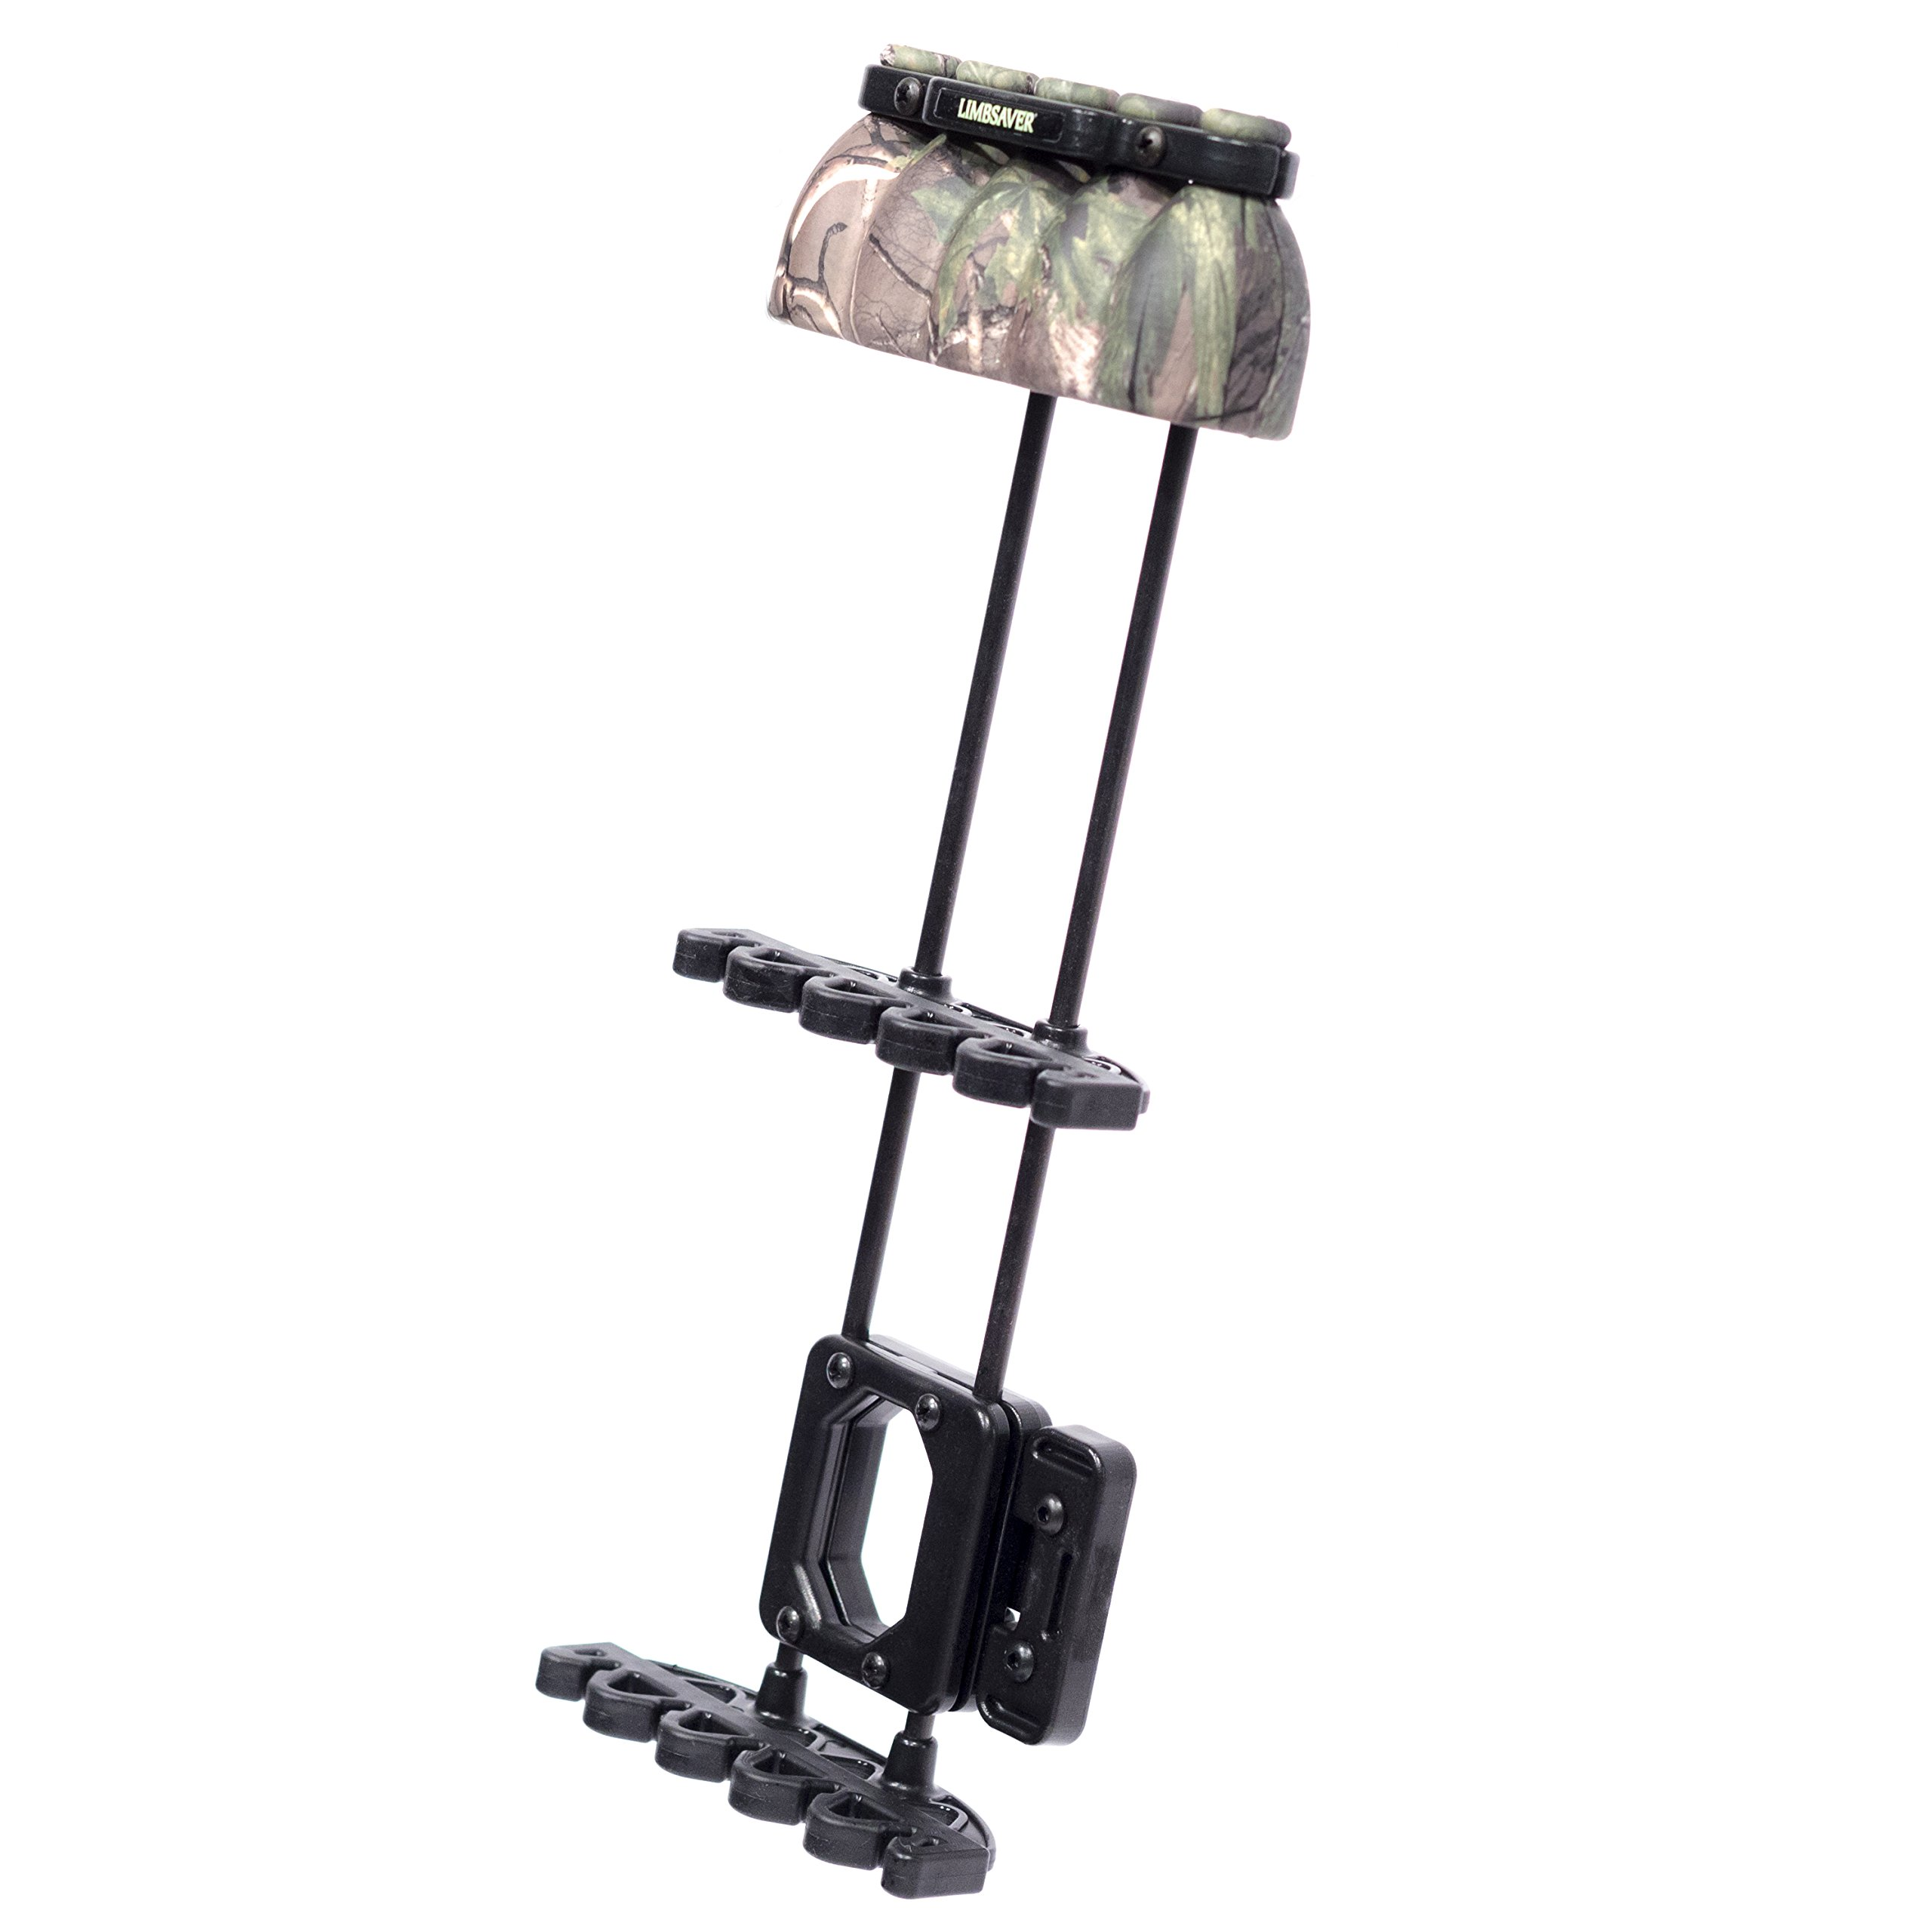 LimbSaver Silent Quiver for Bow Hunting, One Piece, Realtree Xtra Green